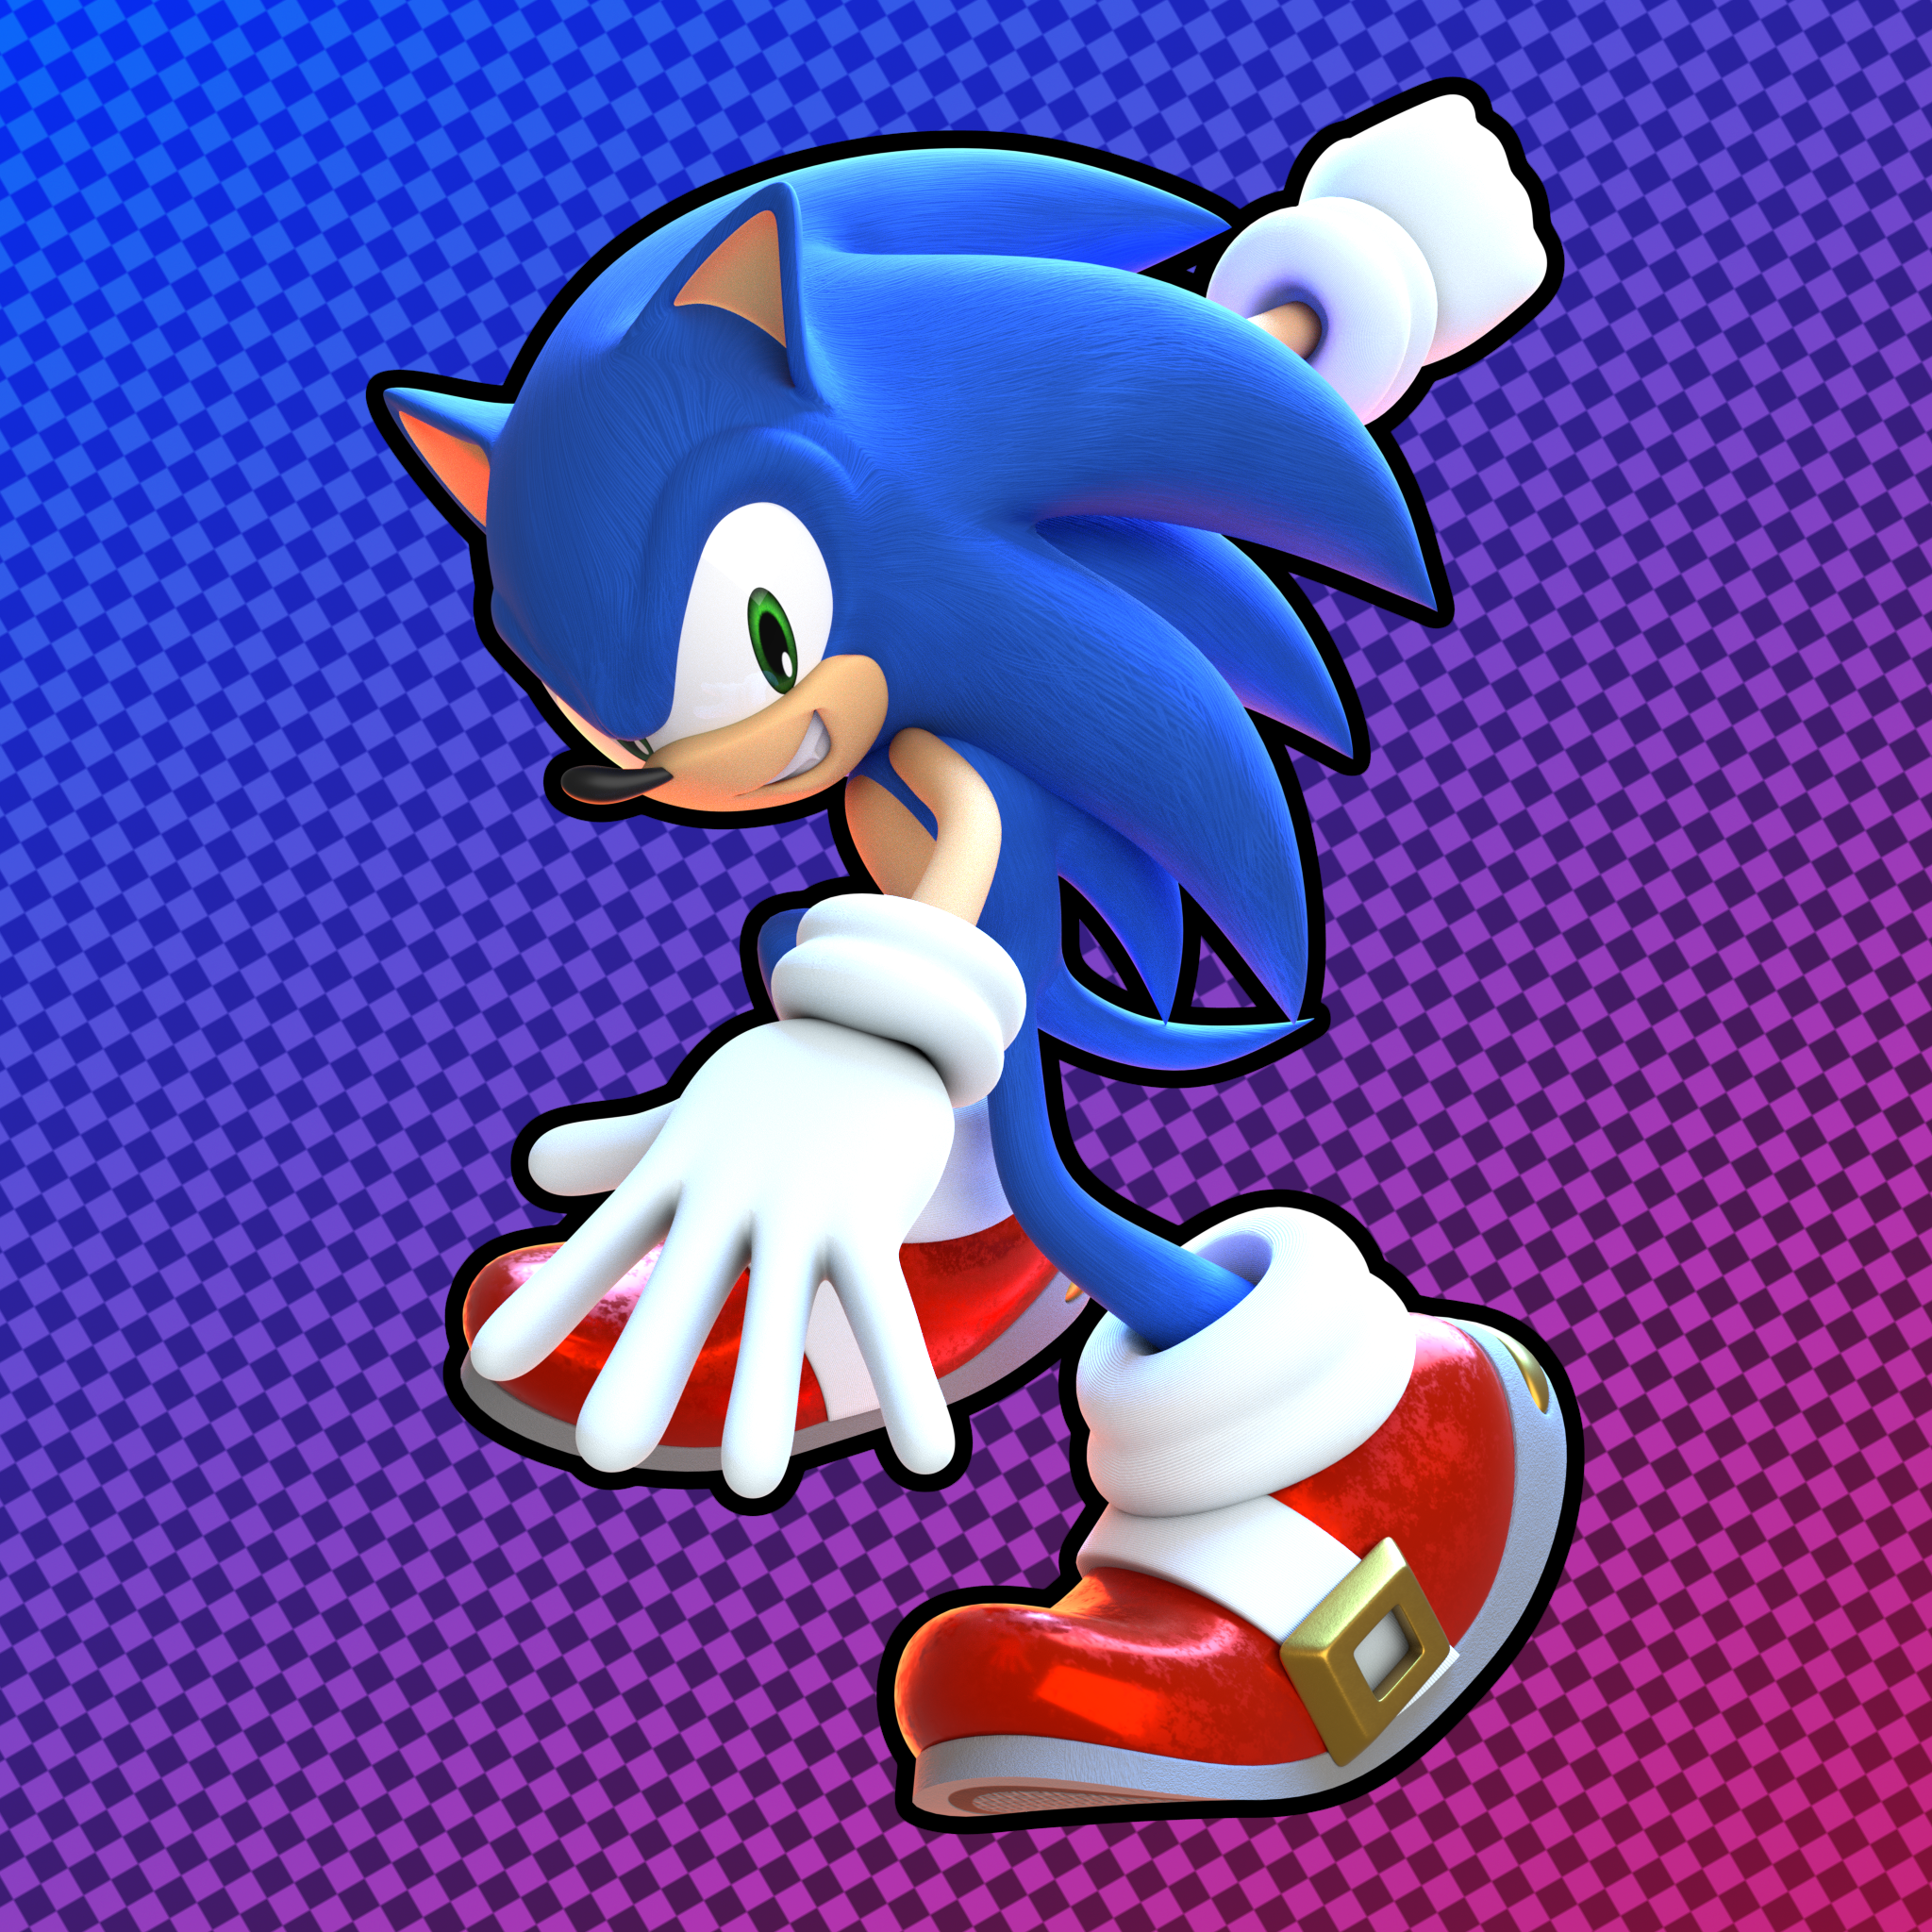 Commission Sonic The Hedgehog Adventure Style By Glitchedlizardda On Deviantart